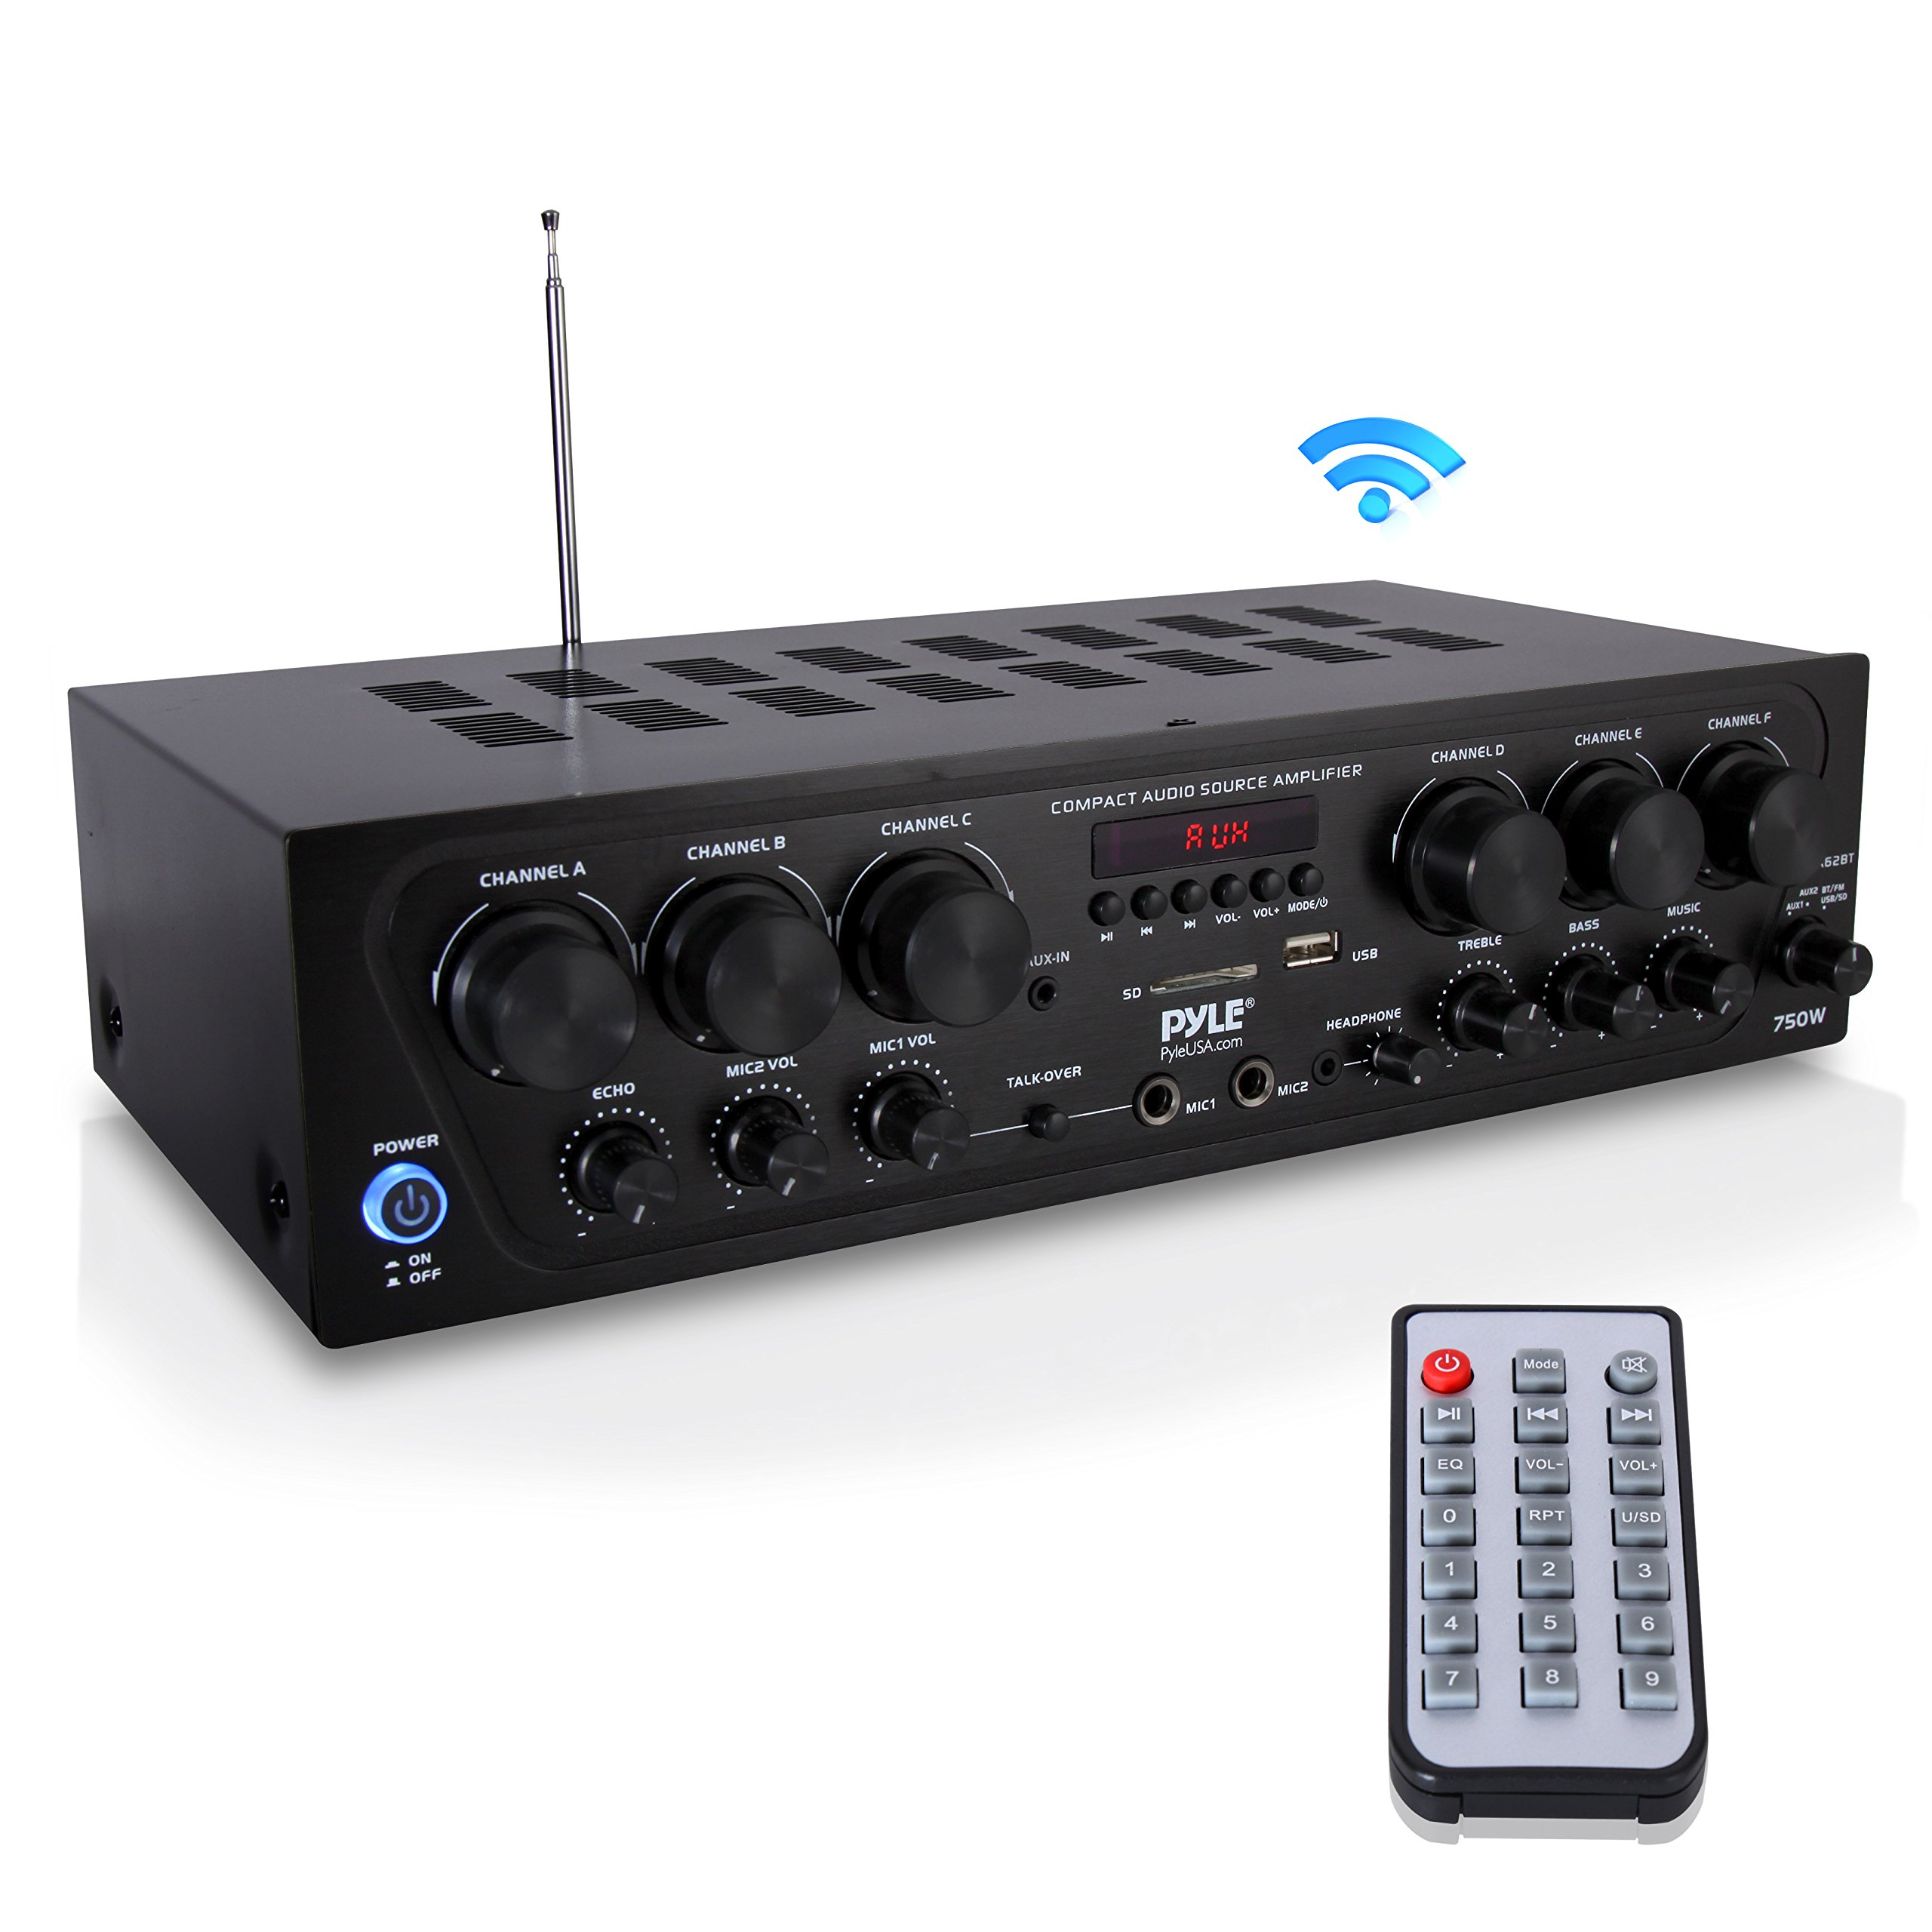 Bluetooth Home Audio Amplifier System - Upgraded 2018 6 Channel 750 Watt Wireless Home Audio Sound Power Stereo Receiver w/ USB, Micro SD, Headphone, 2 Microphone Input w/ Echo, Talkover for PA - Pyle by Pyle